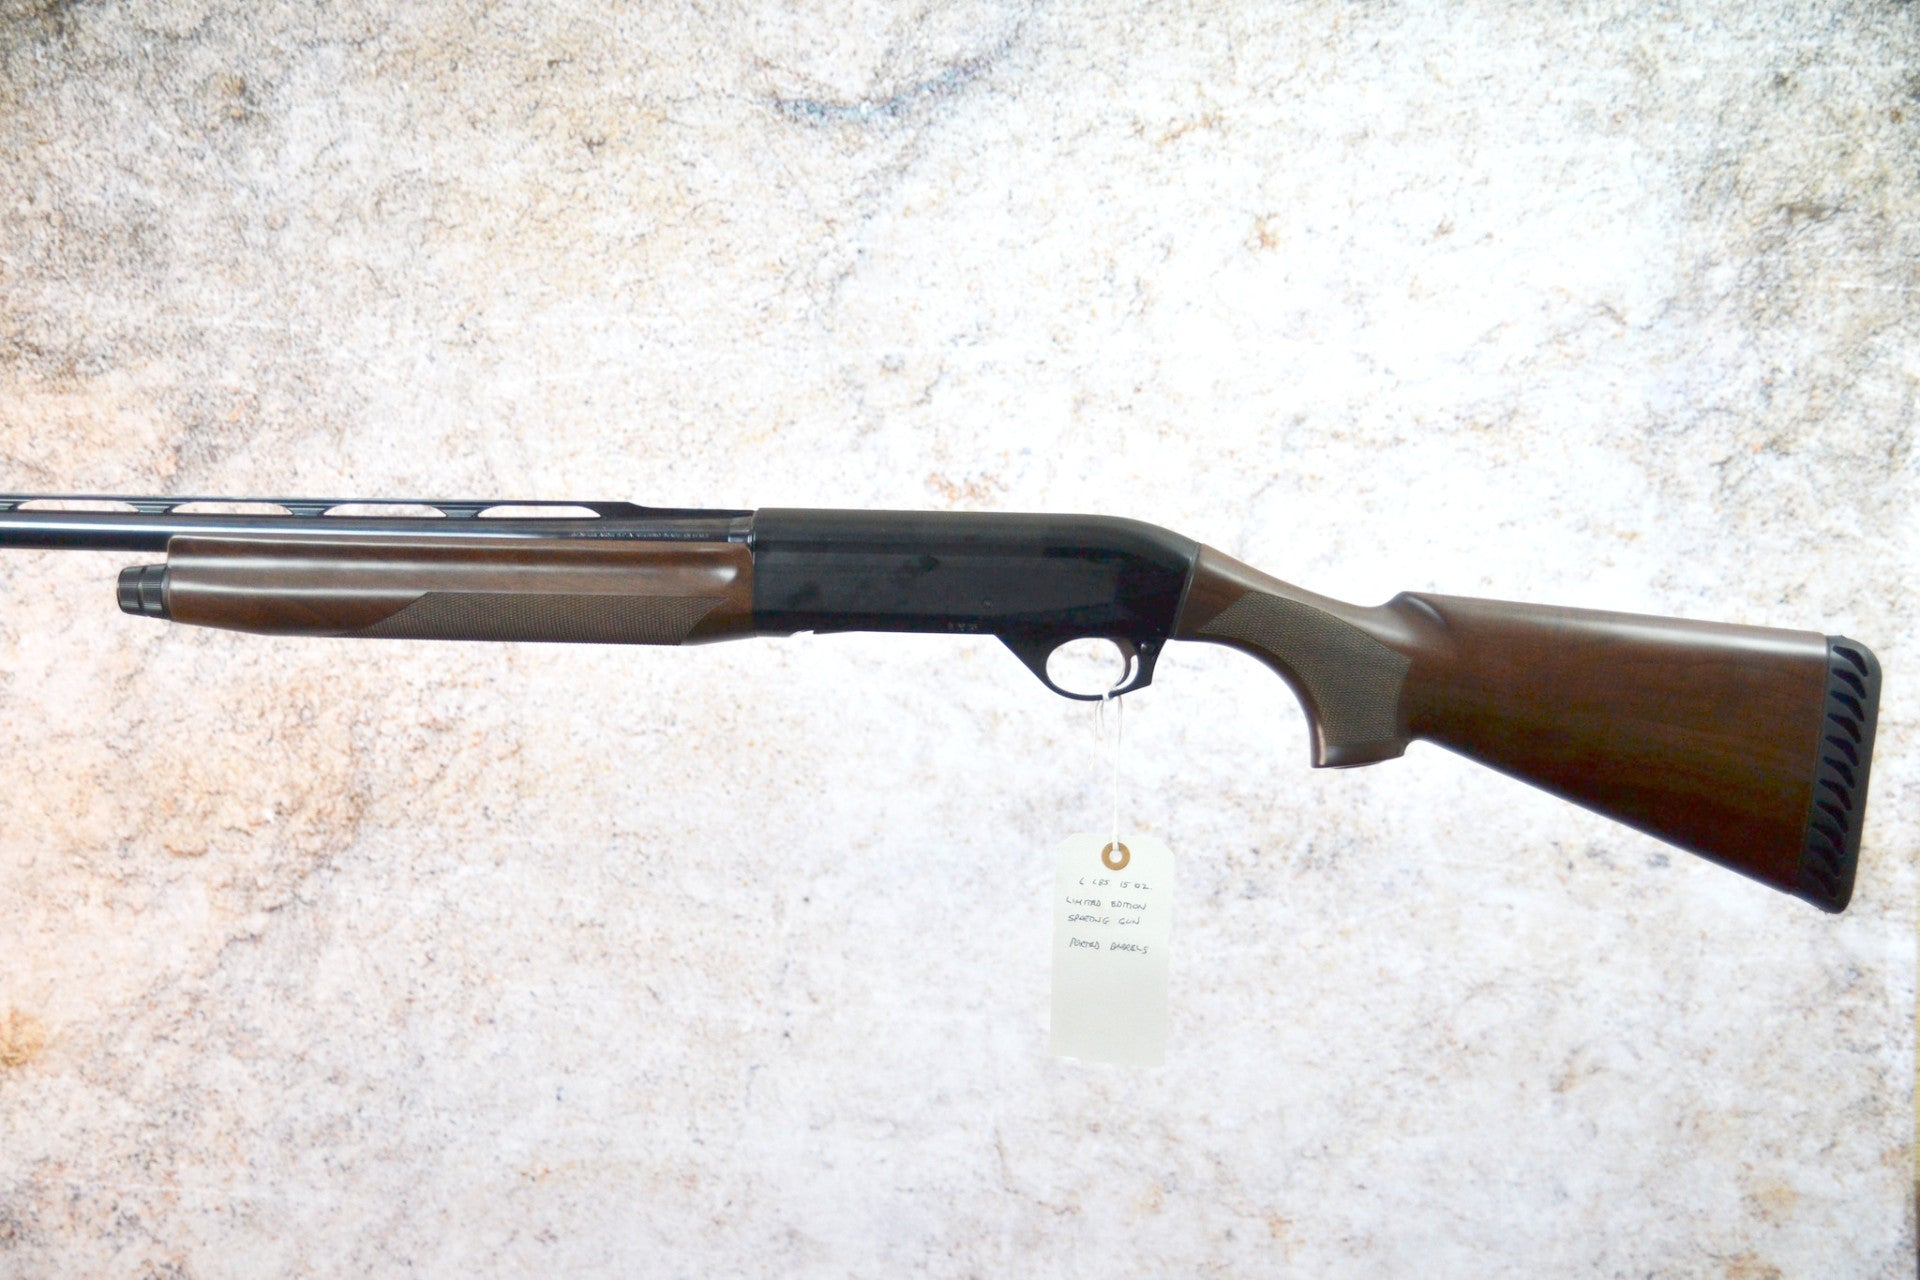 dating benelli shotguns The benelli m3 (super 90) is a dual-mode (both pump-action and semi-automatic) shotgun designed and manufactured by italian firearms manufacturer benelli armi spathe m3 holds a maximum of.